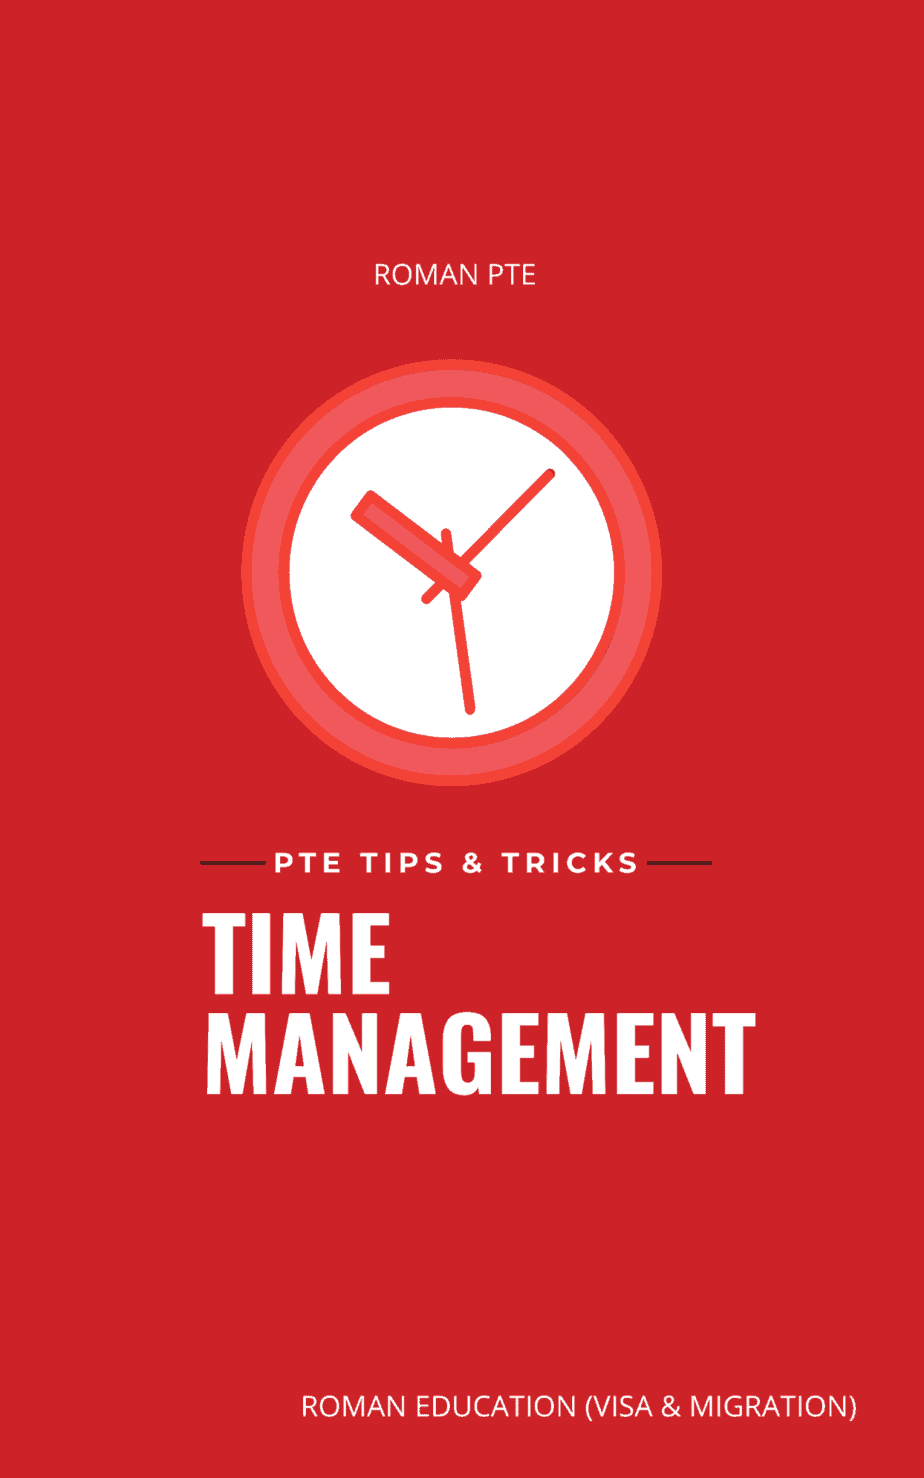 PTE time management